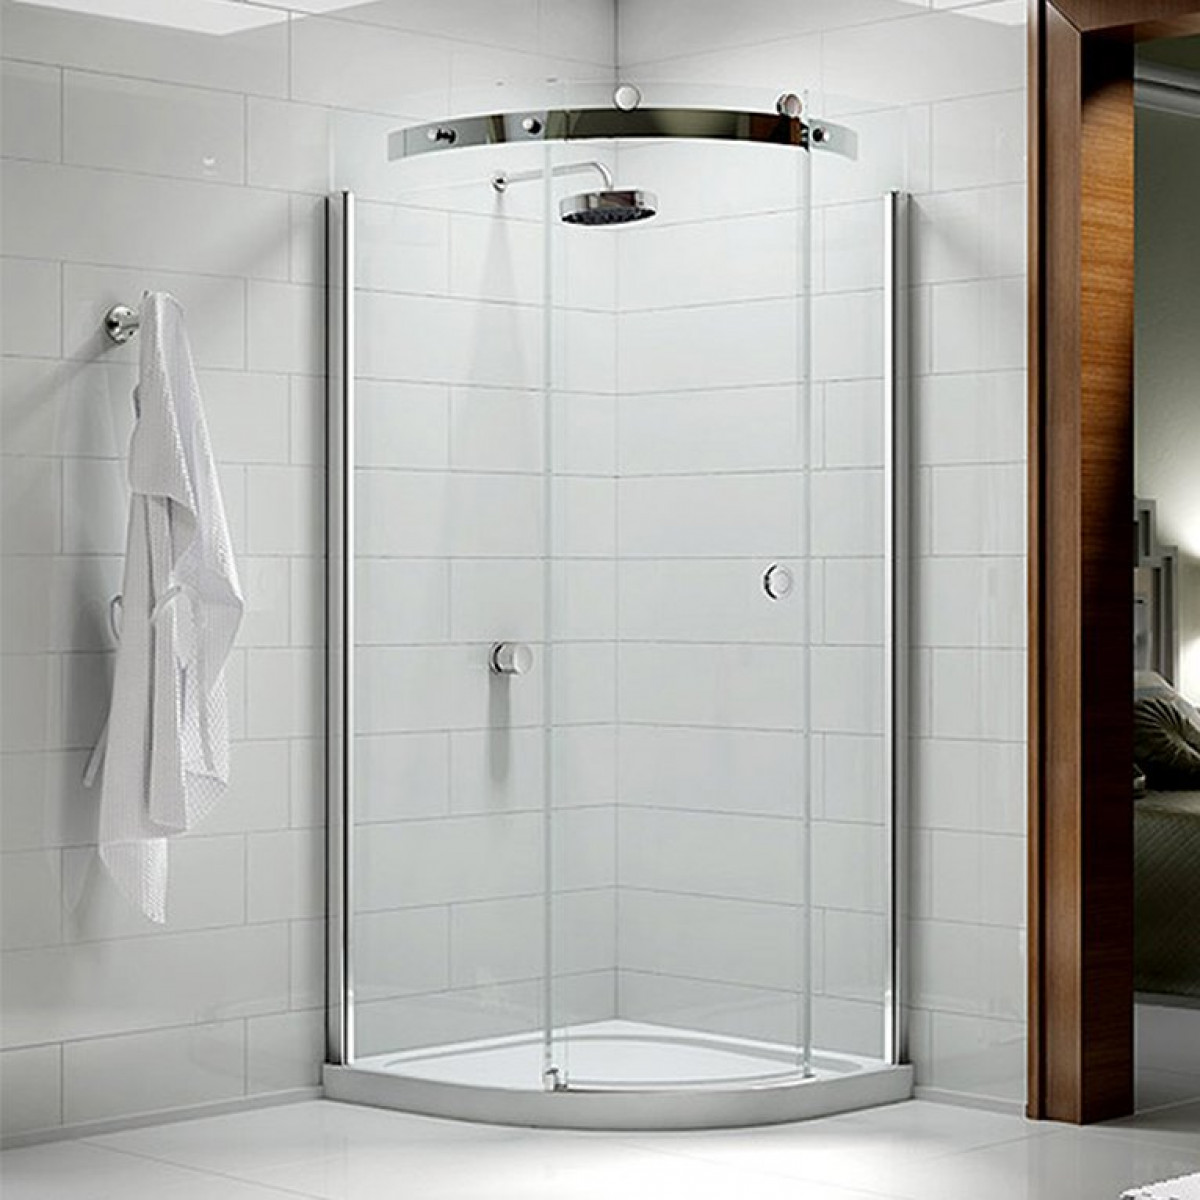 Best Quadrant Shower Enclosure Part - 25: Merlyn 10 Series 900mm 1 Door Quadrant Shower Enclosure